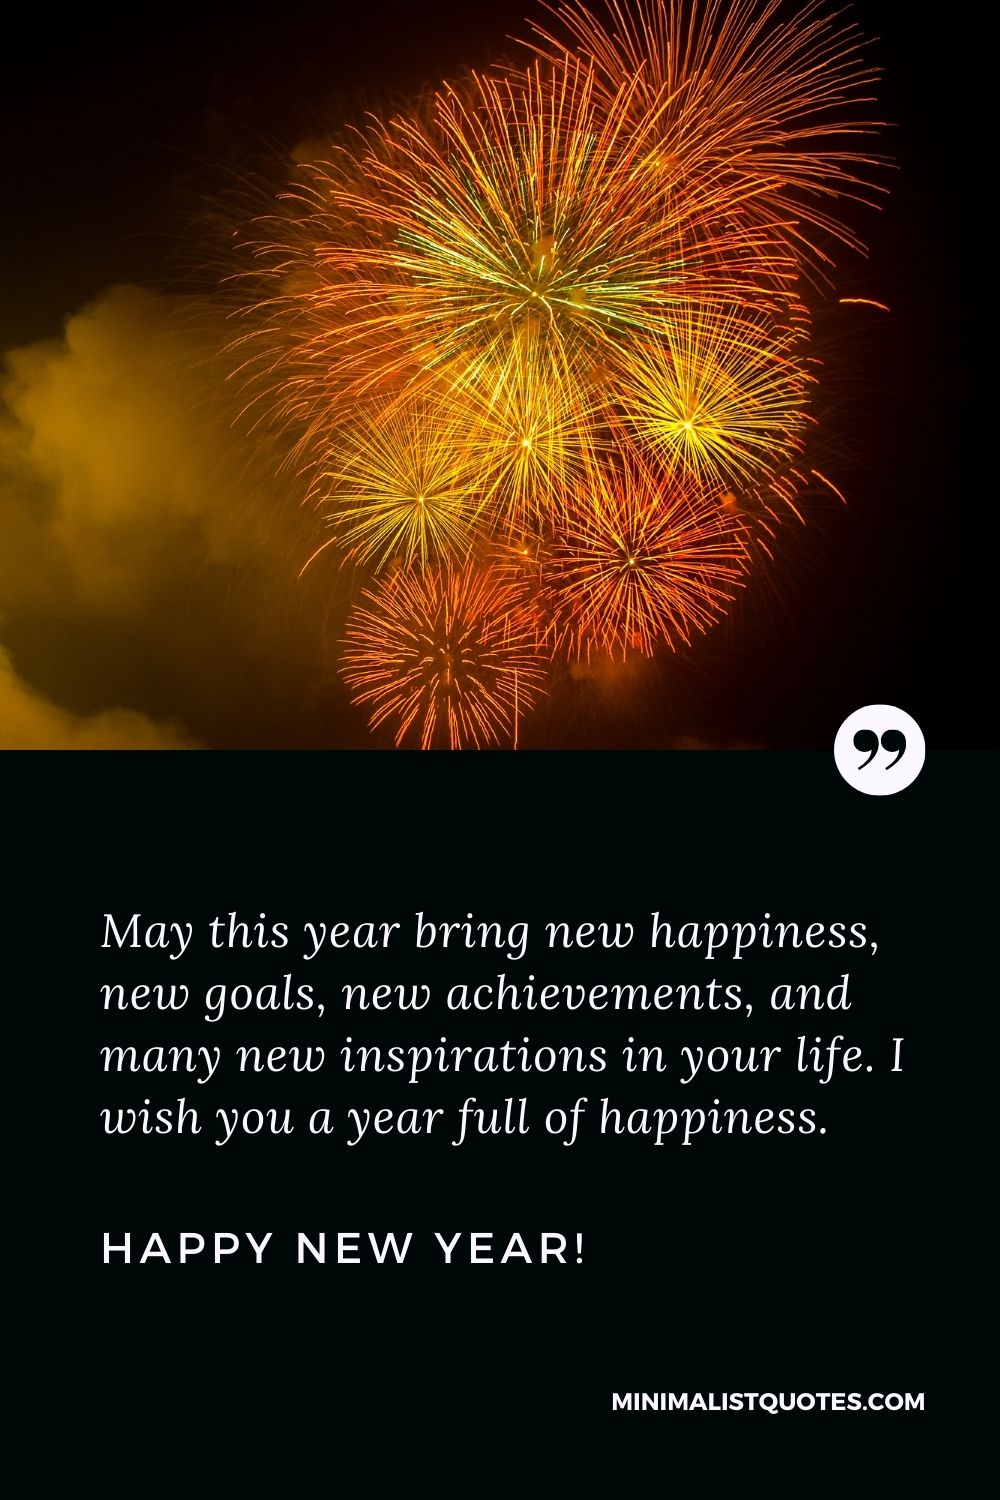 Happy new year greetings 2022: May this year bring new happiness, new goals, new achievements, and many new inspirations in your life. I wish you a year full of happiness. Happy New Year!